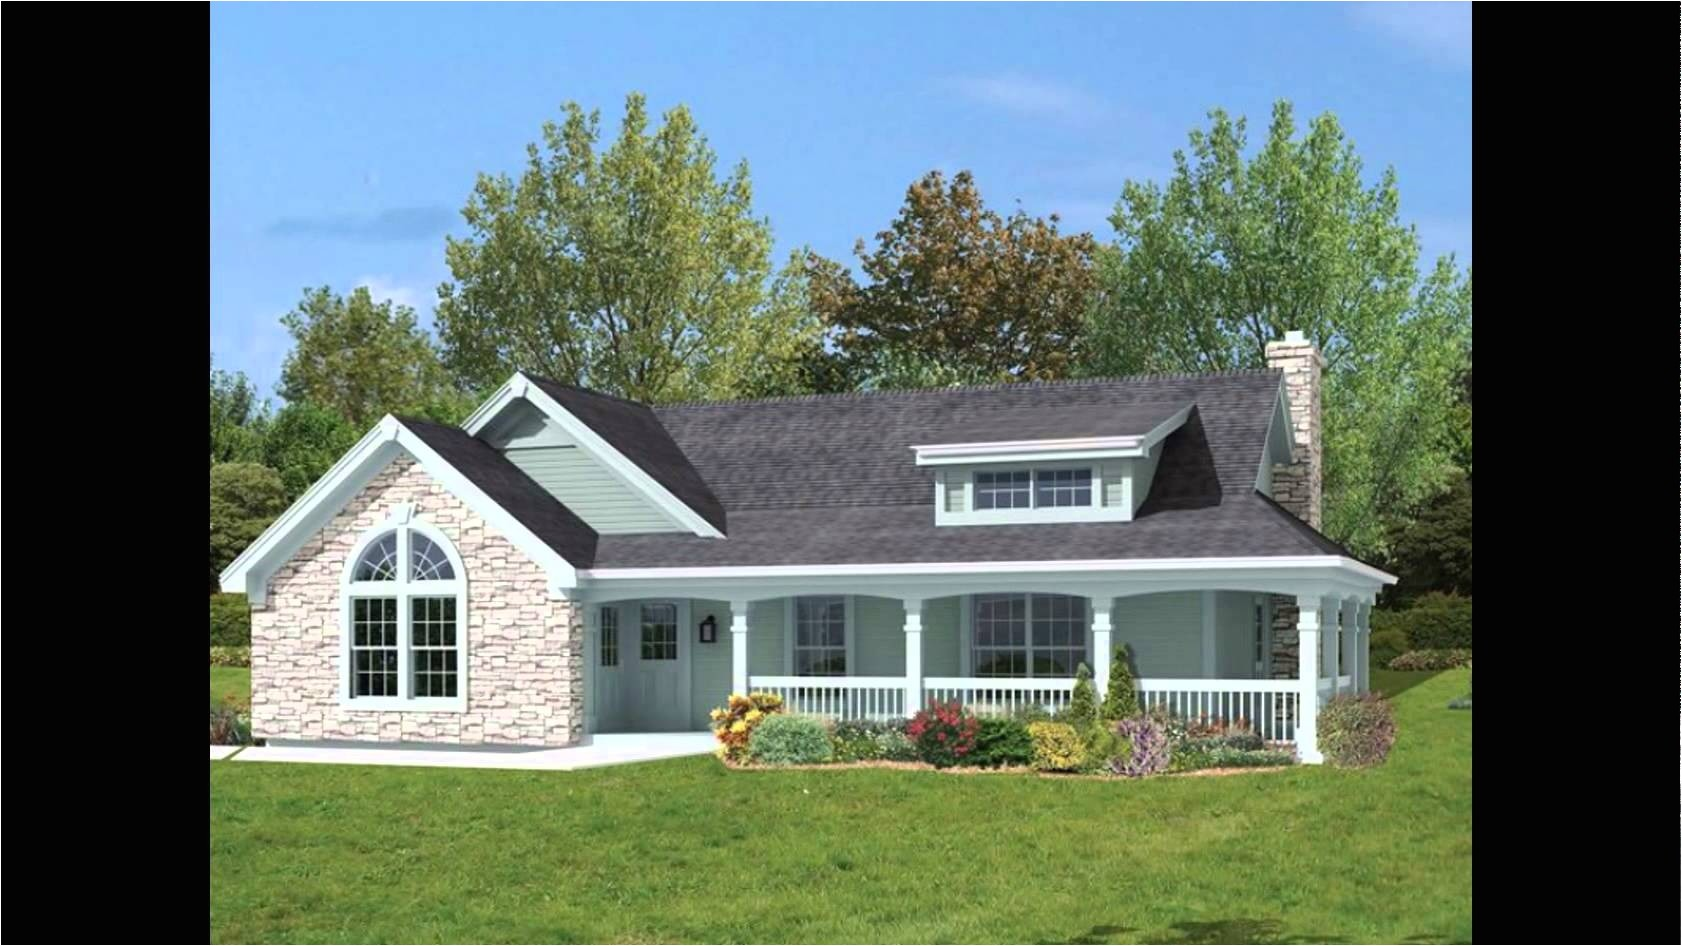 9889 one level house plans with wrap around porch